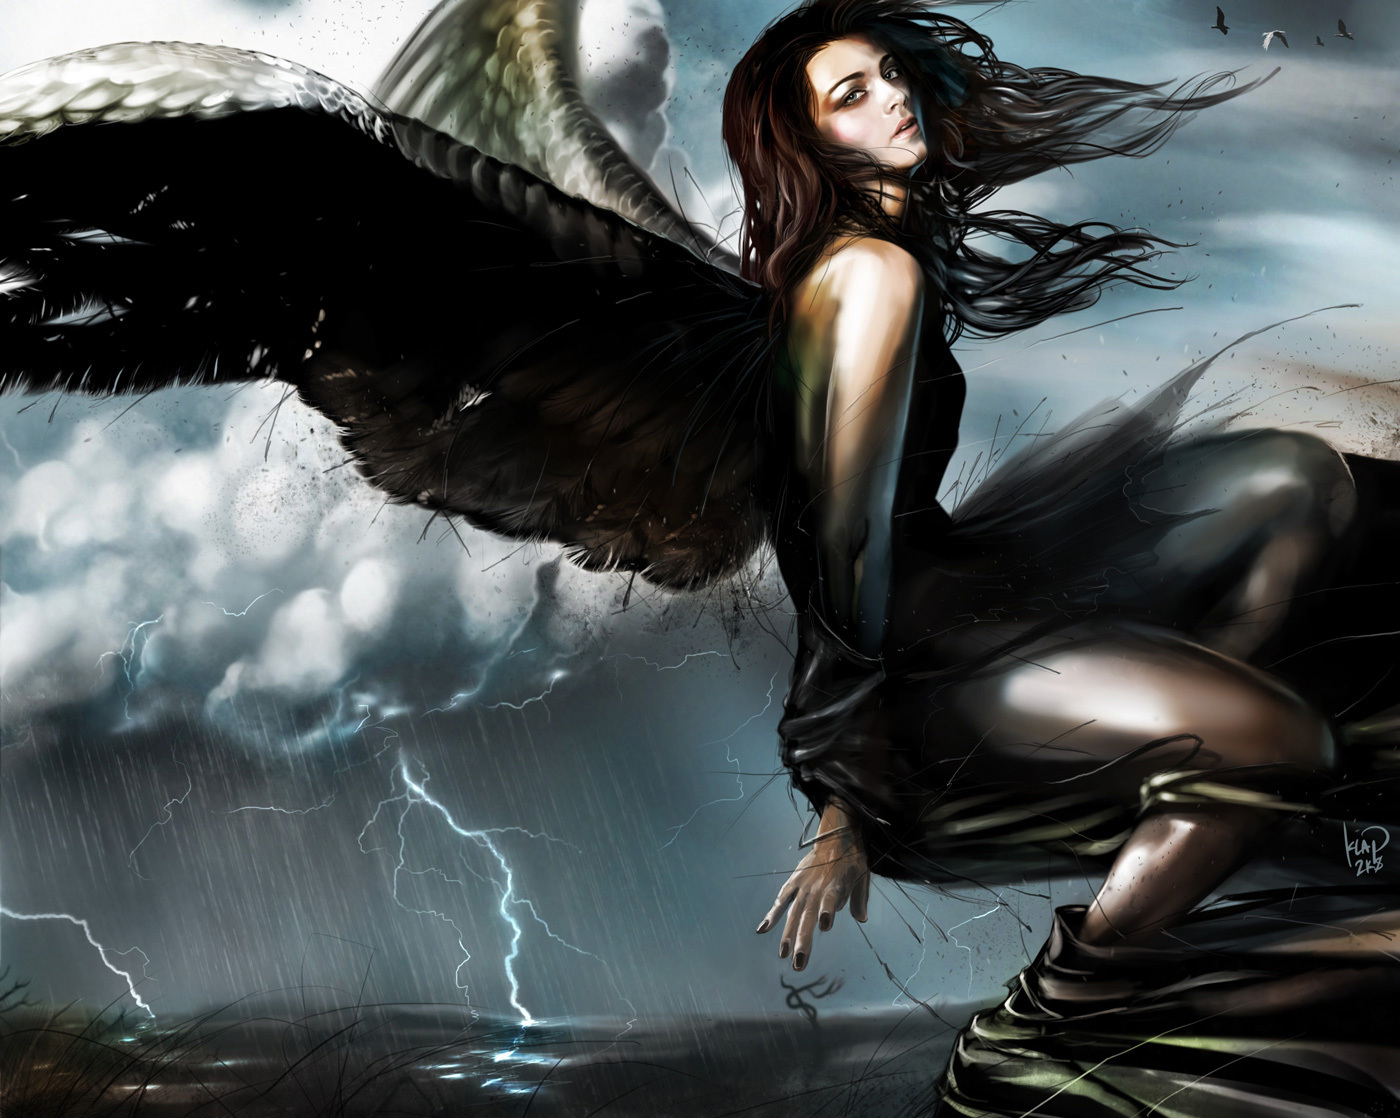 Dark Gothic Pictures of Angels http://www.chickensmoothie.com/Forum/viewtopic.php?t=1559648